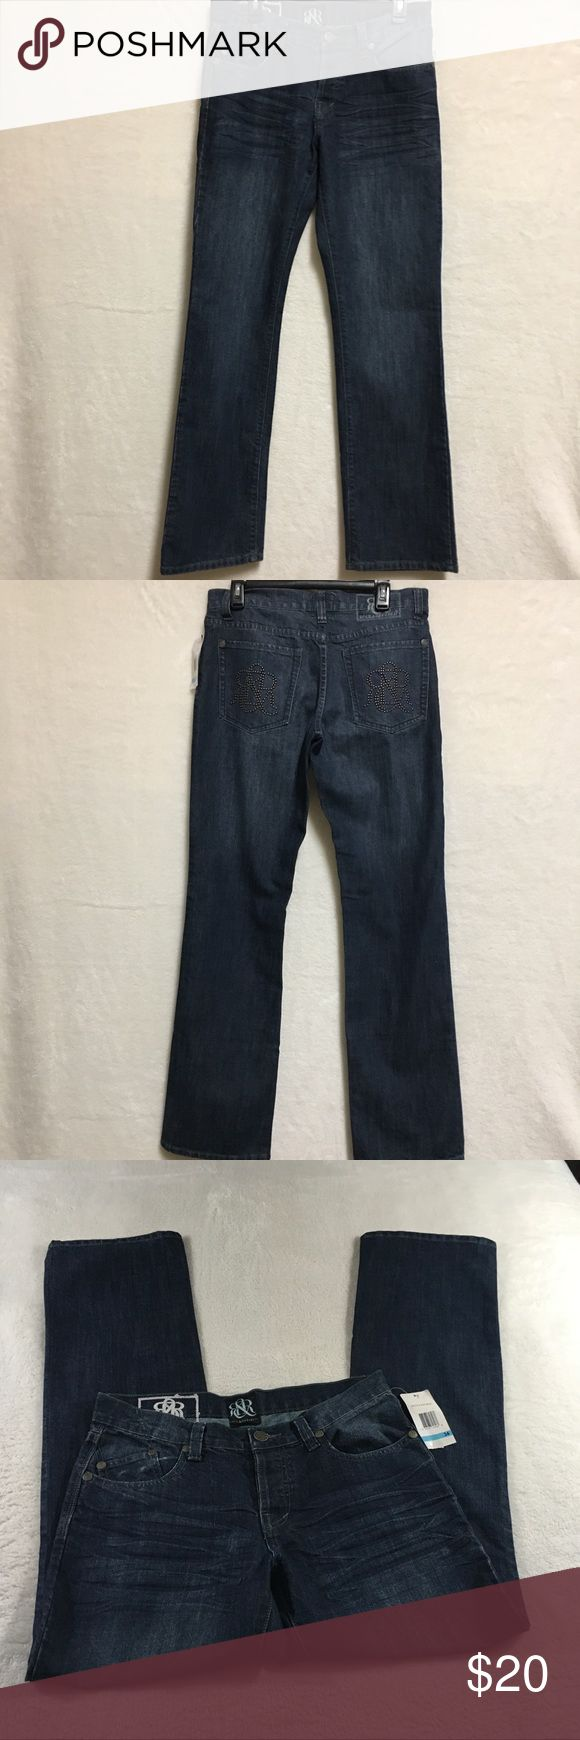 Rock & Republic Women's Jeans Size 34X34 Dark wash jeans Nice design in the pockets New with tags Rock & Republic Jeans Straight Leg